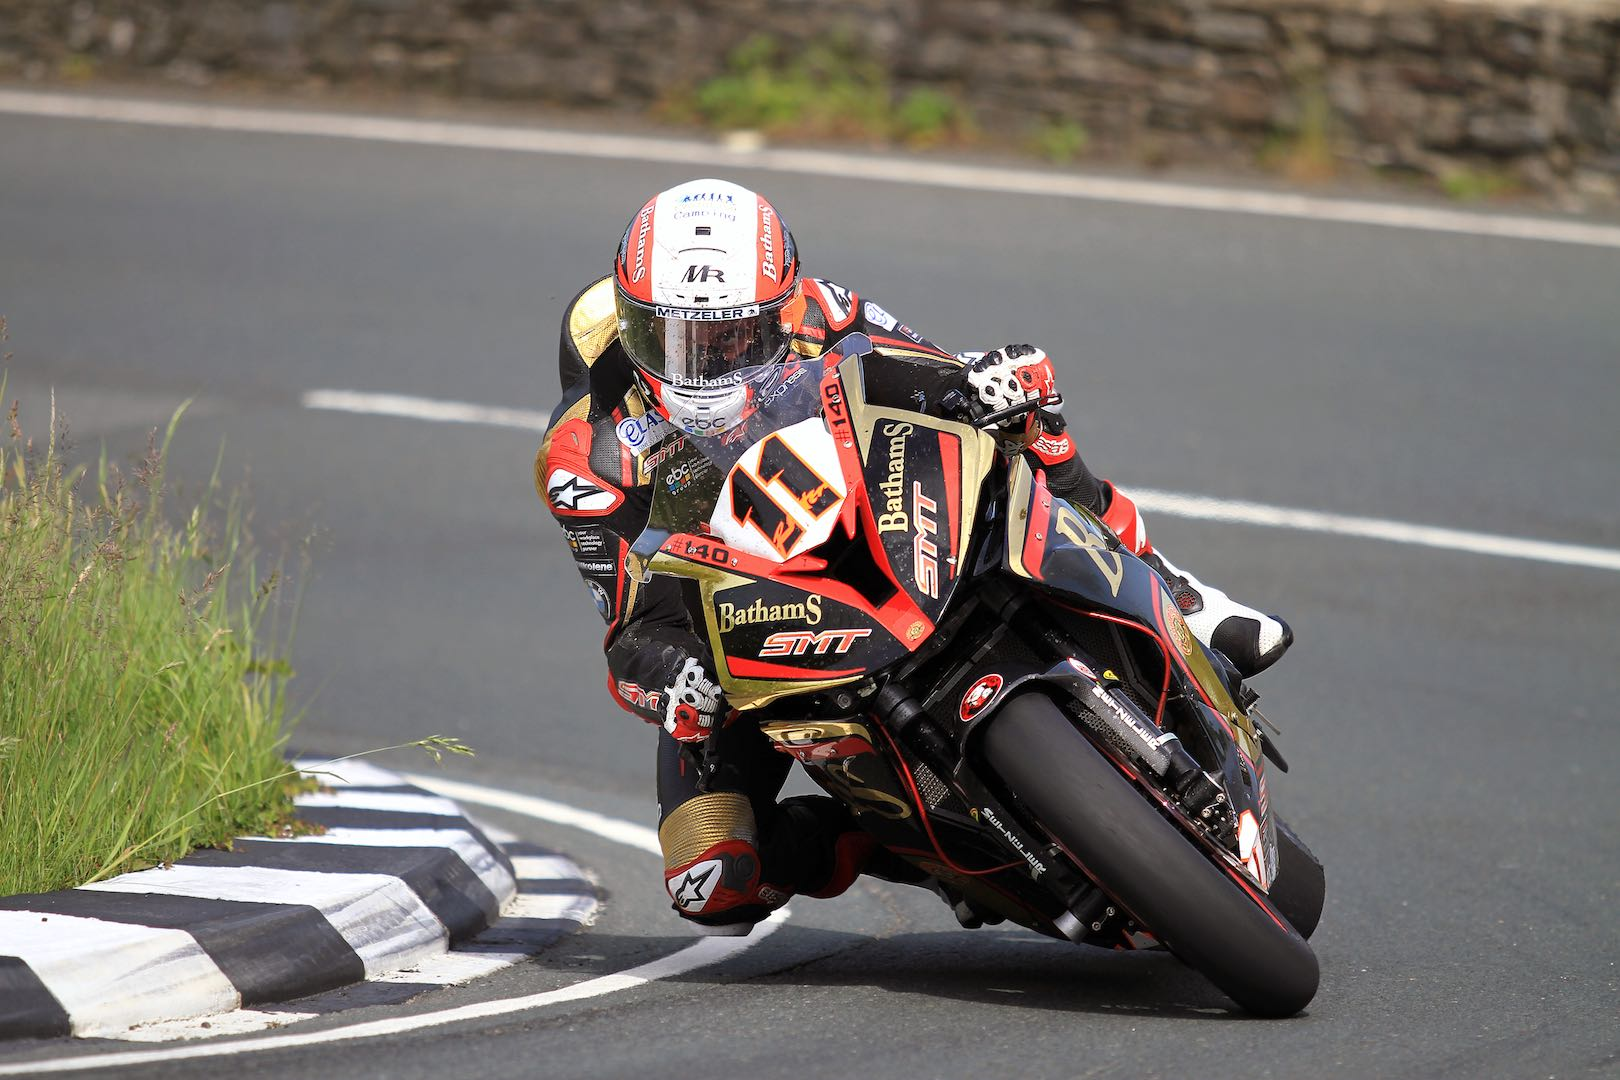 2017 Isle of Man TT Senior Race Results: BMW's Michael Rutter